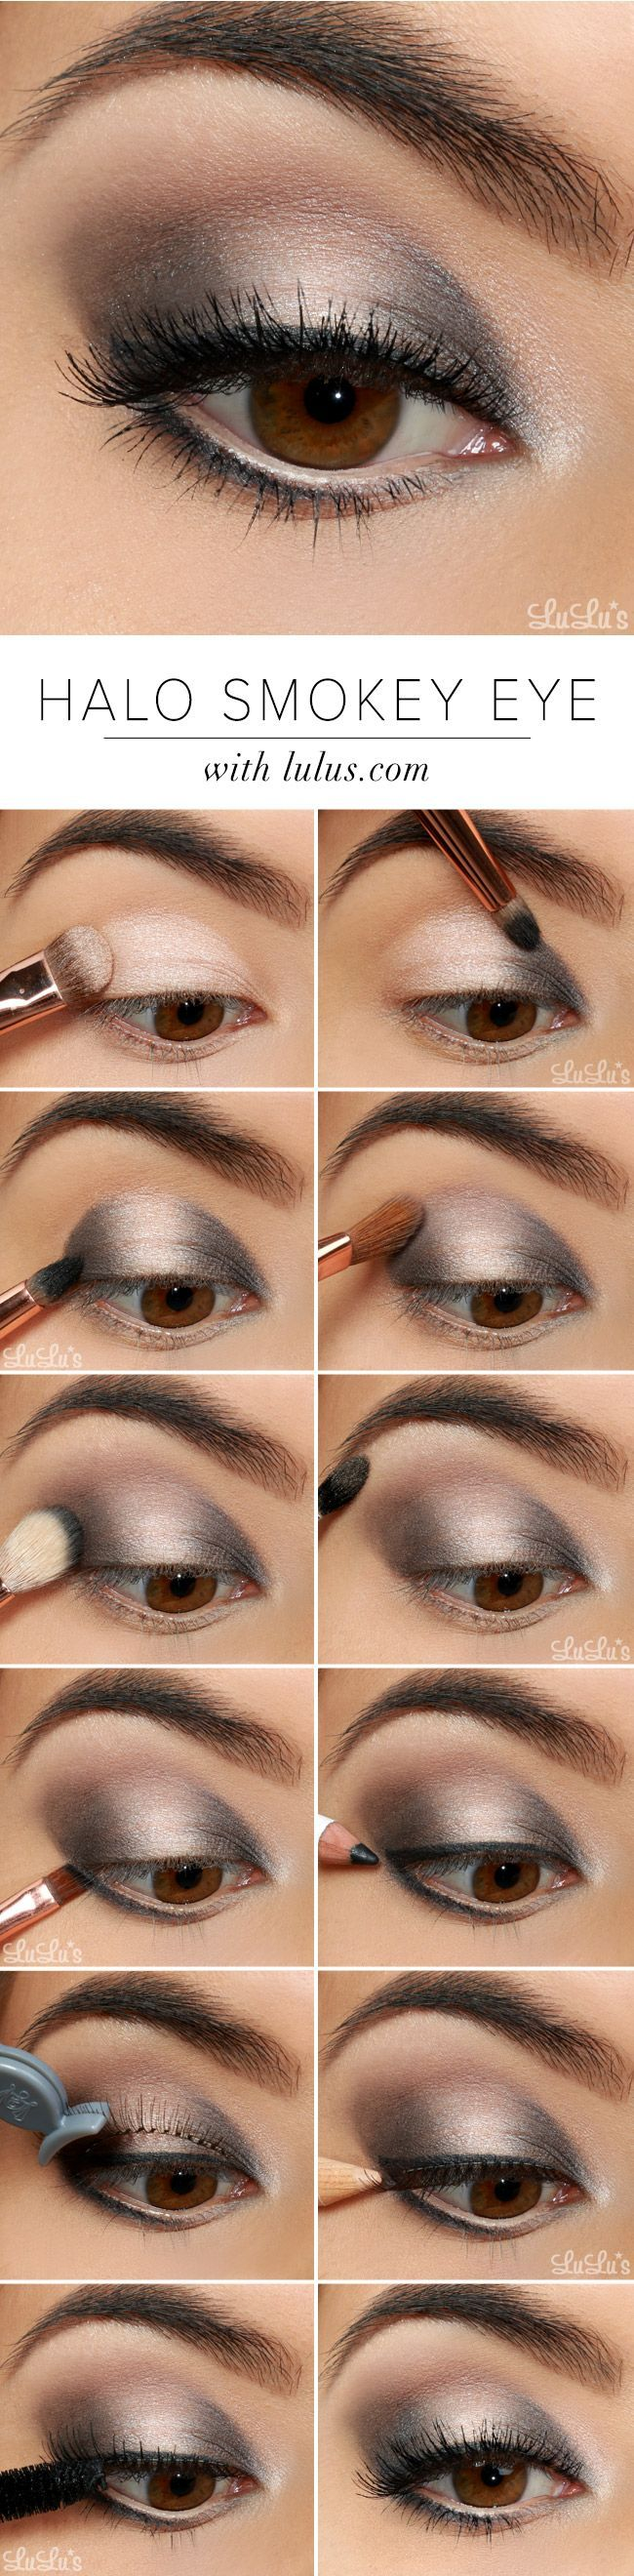 15 Fabulous Step-By-Step Makeup Tutorials You Would Love To Try - fashionsy.com